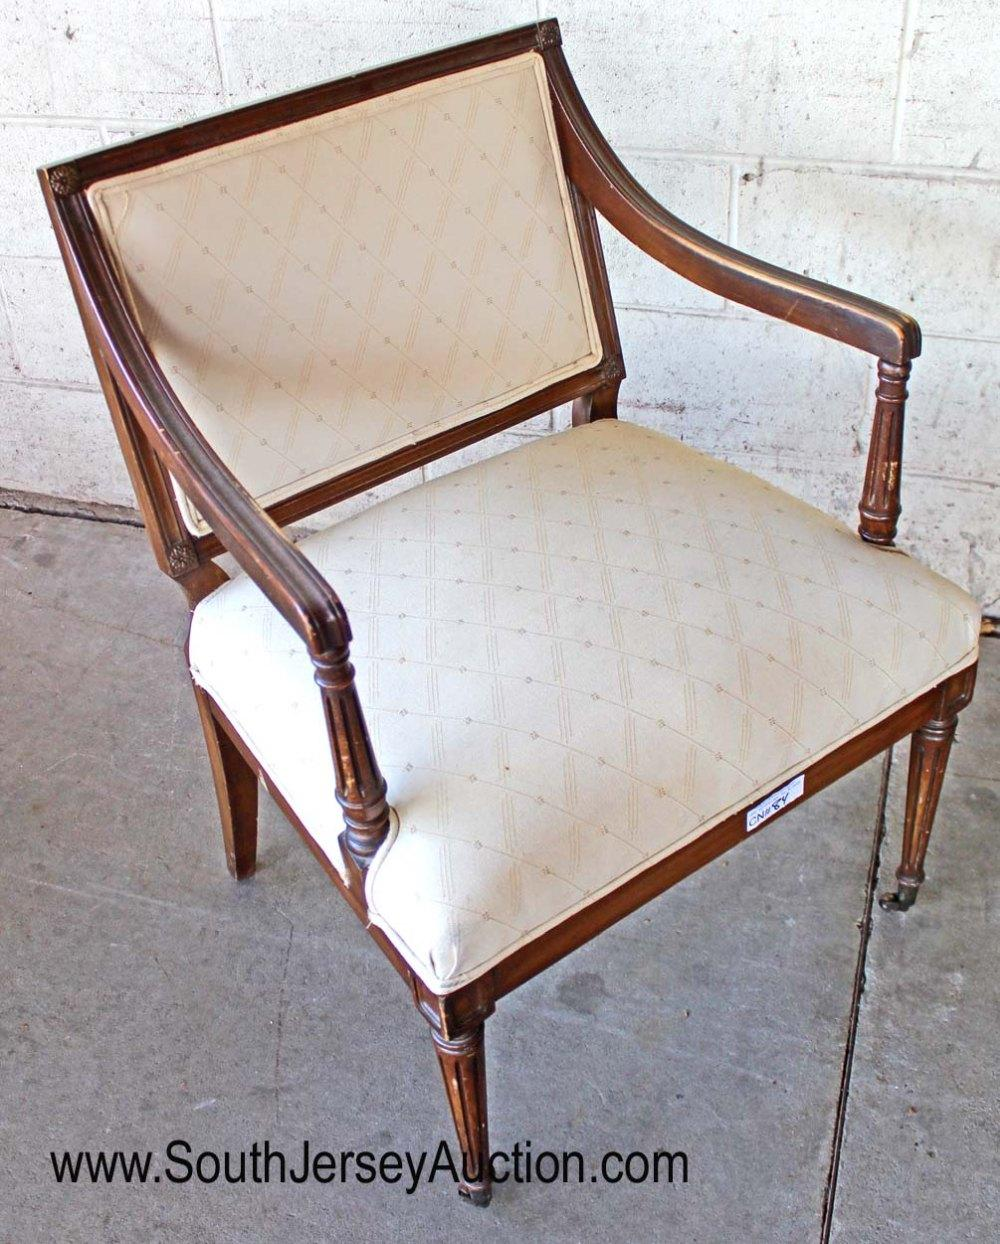 Upholstered Mahogany Frame Arm Chair